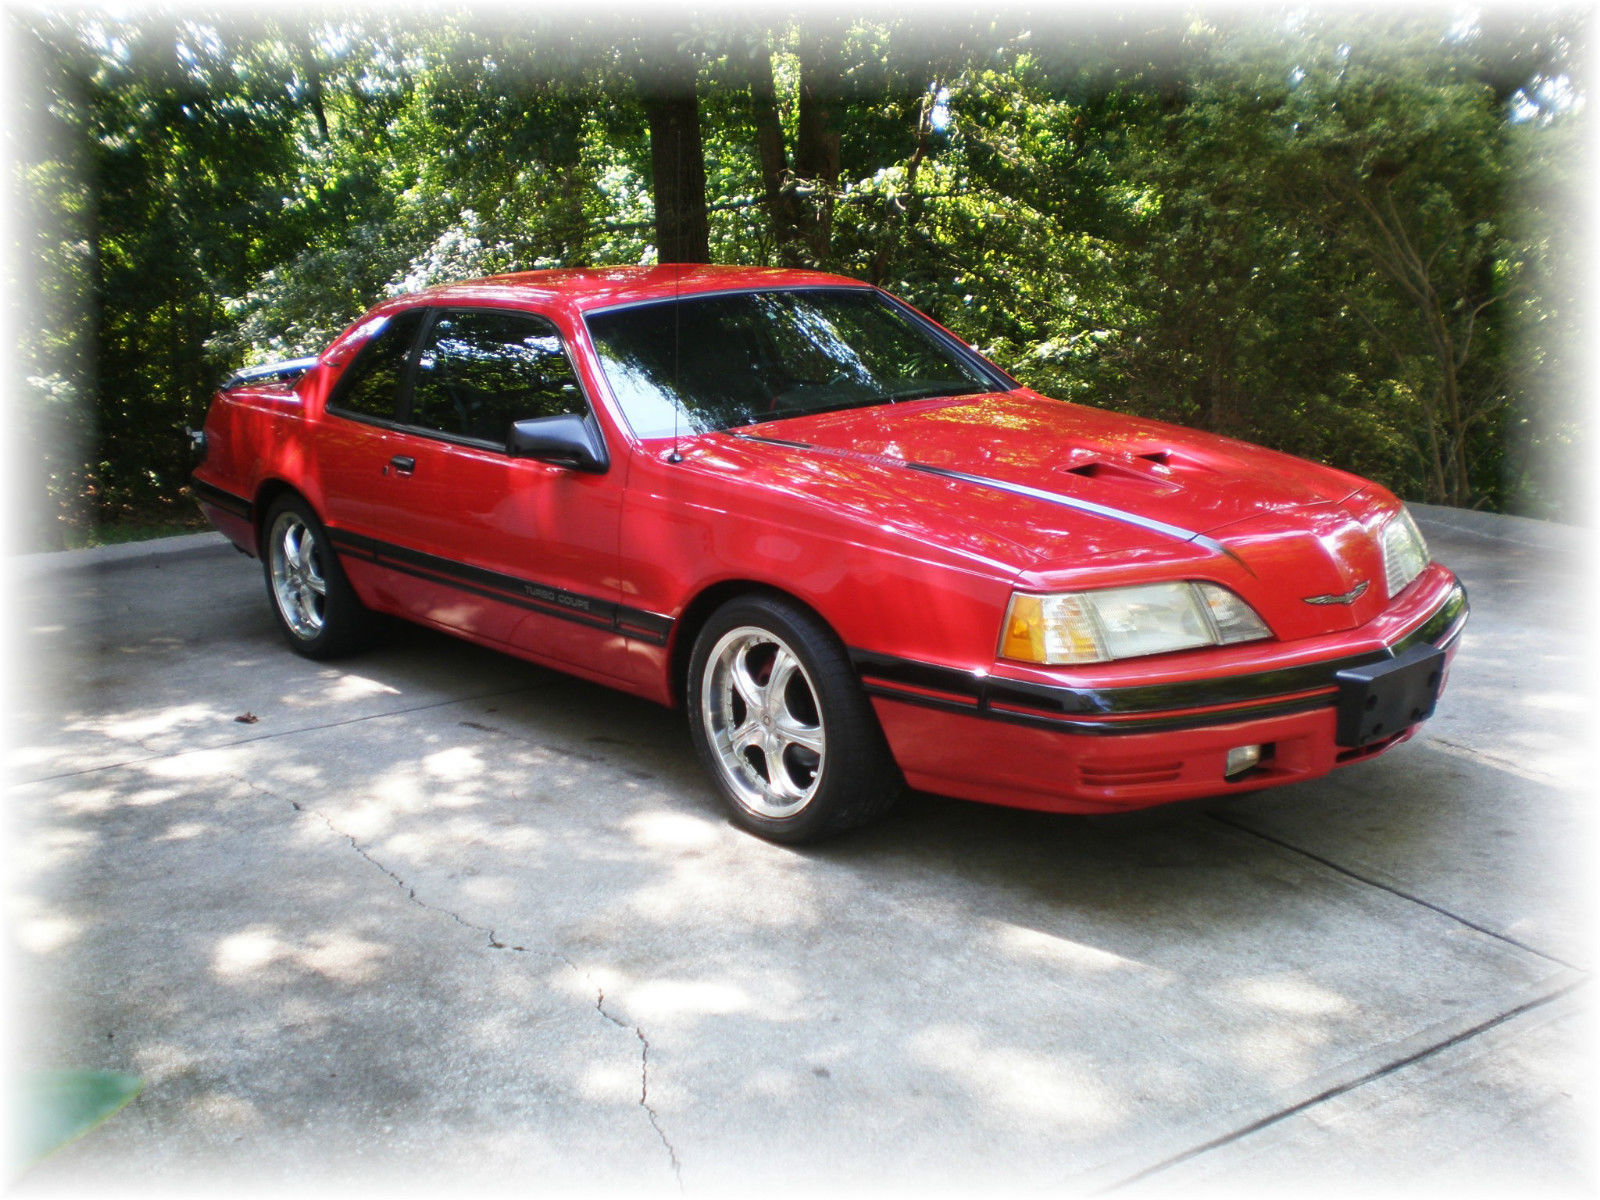 1988 ford thunderbird turbo coupe mach 1 special edition red very rare upgrades classic ford. Black Bedroom Furniture Sets. Home Design Ideas